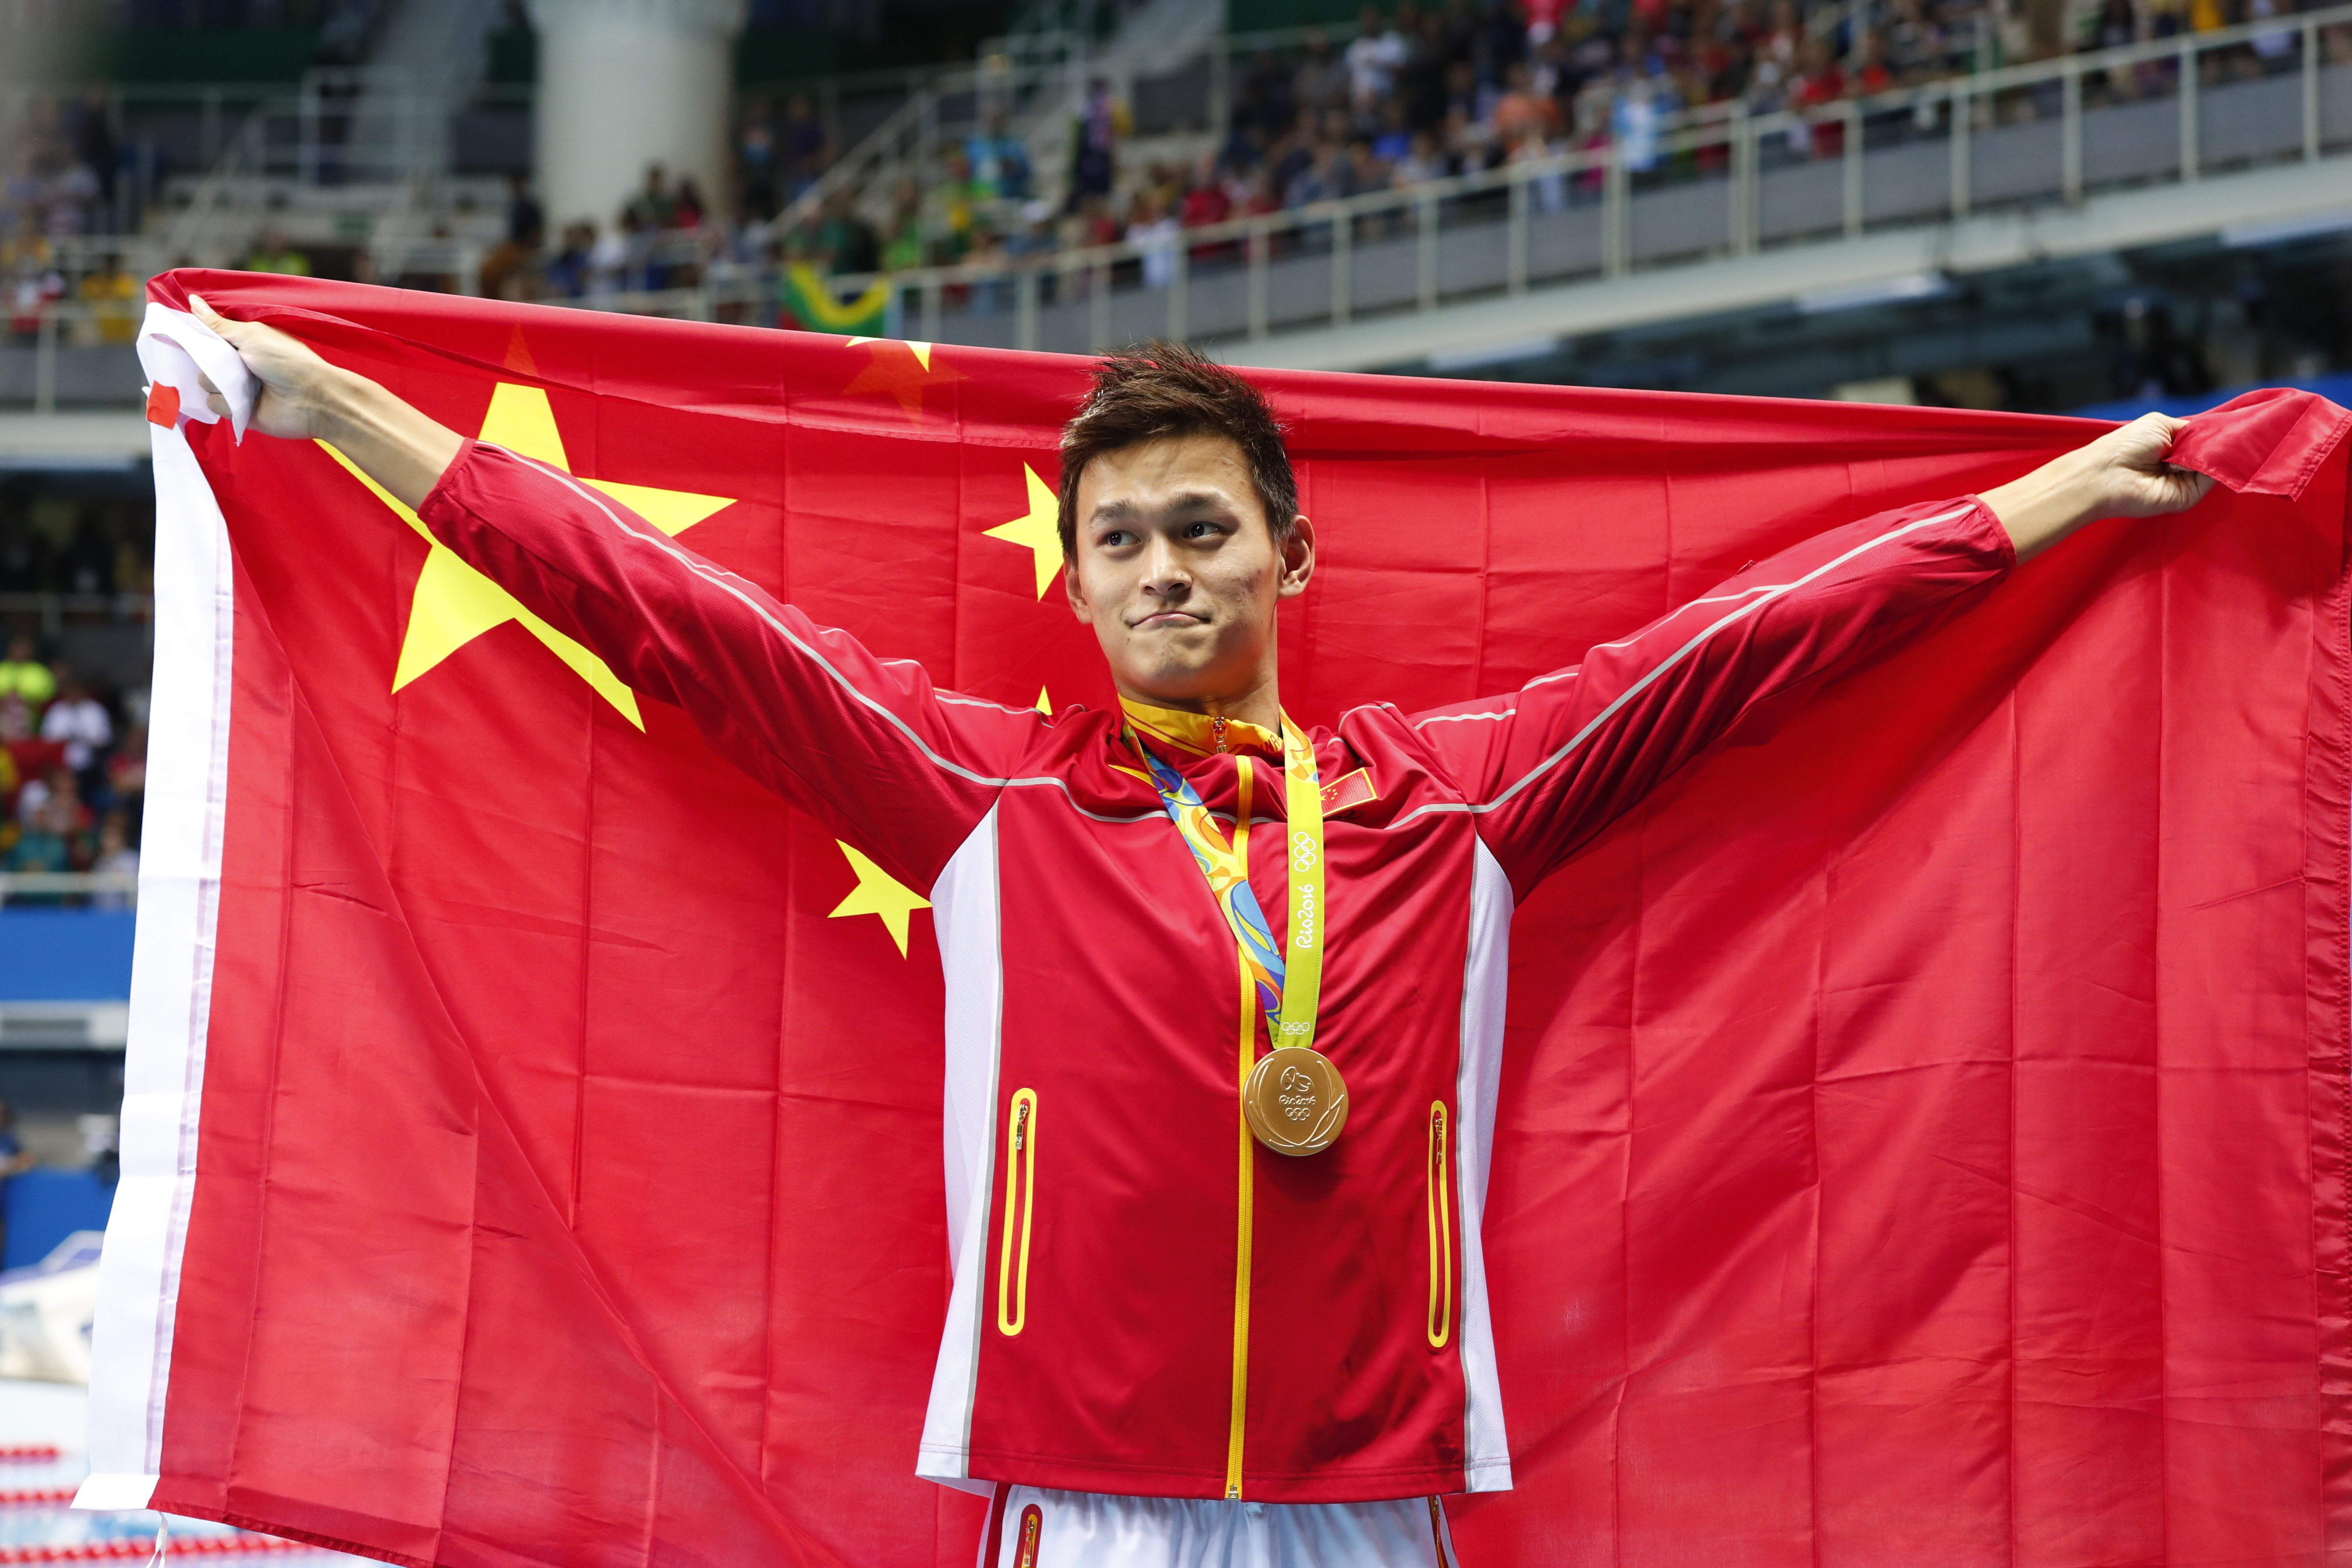 Sun Yang of China competed in this year's Olympics despite serving a doping ban in 2014. (New York Times)